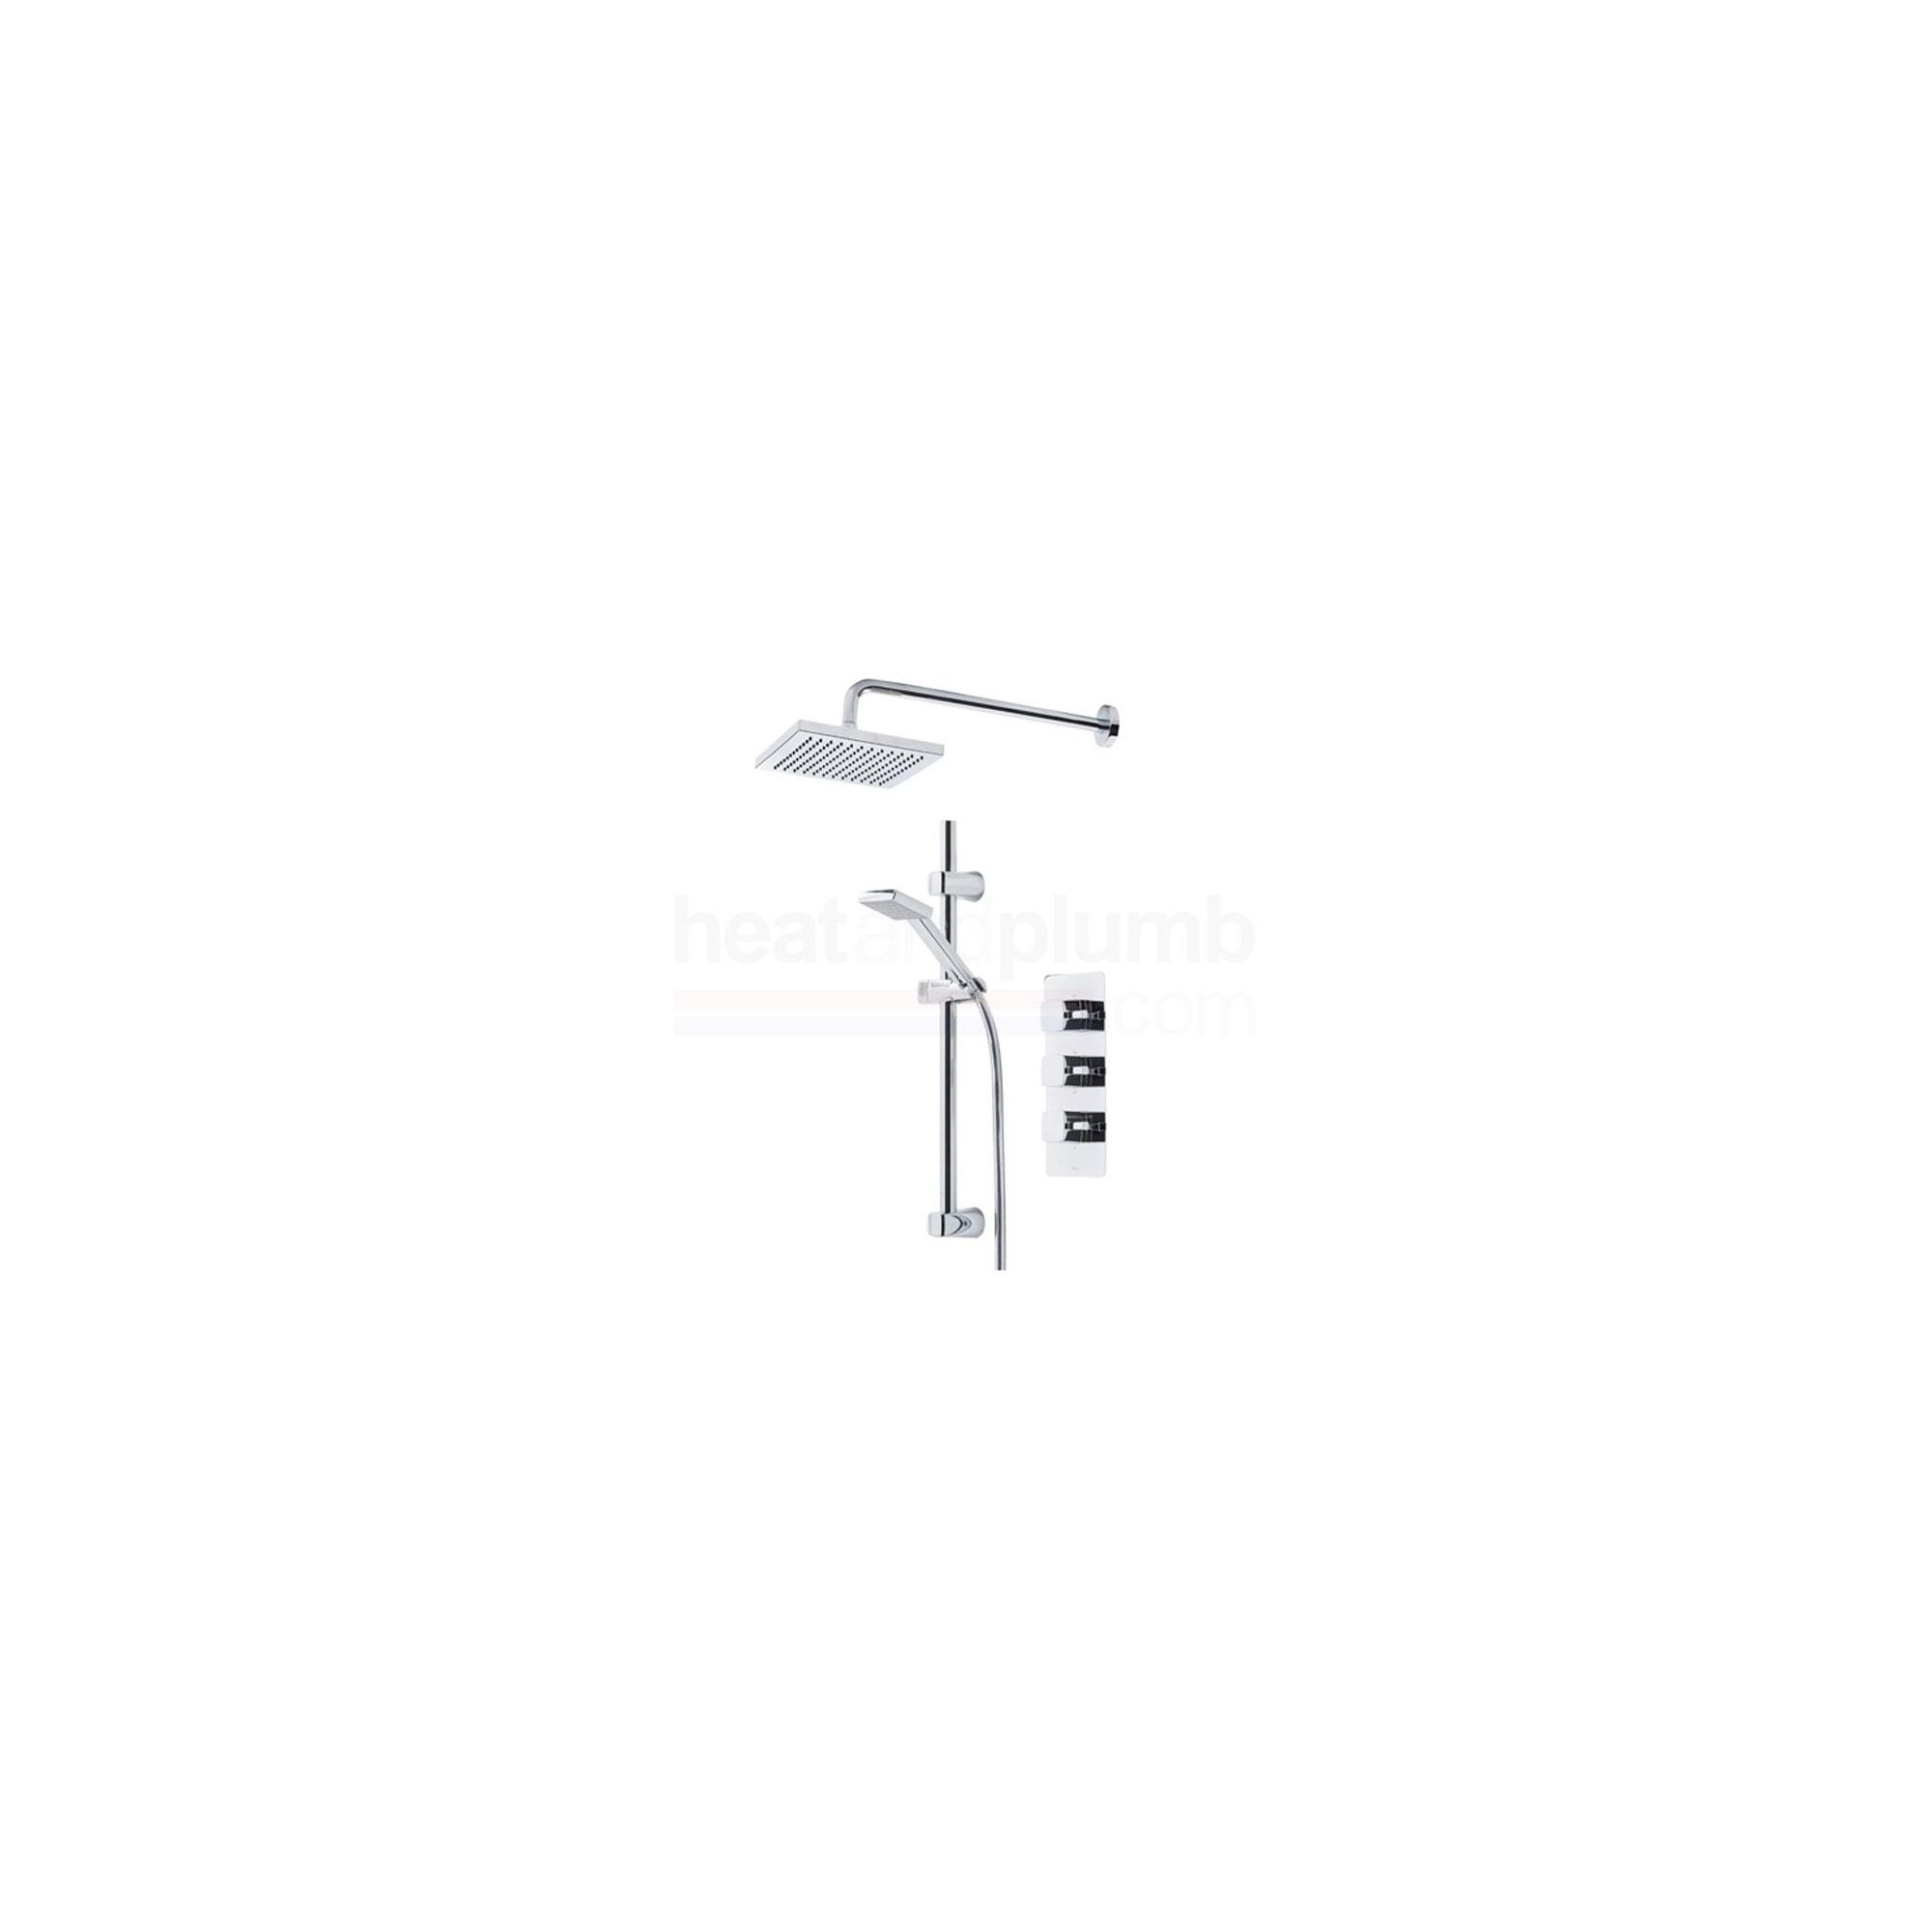 Tavistock Logic Thermostatic Triple Concealed Shower Valve with Square Shower Head & Single Function Handset at Tesco Direct